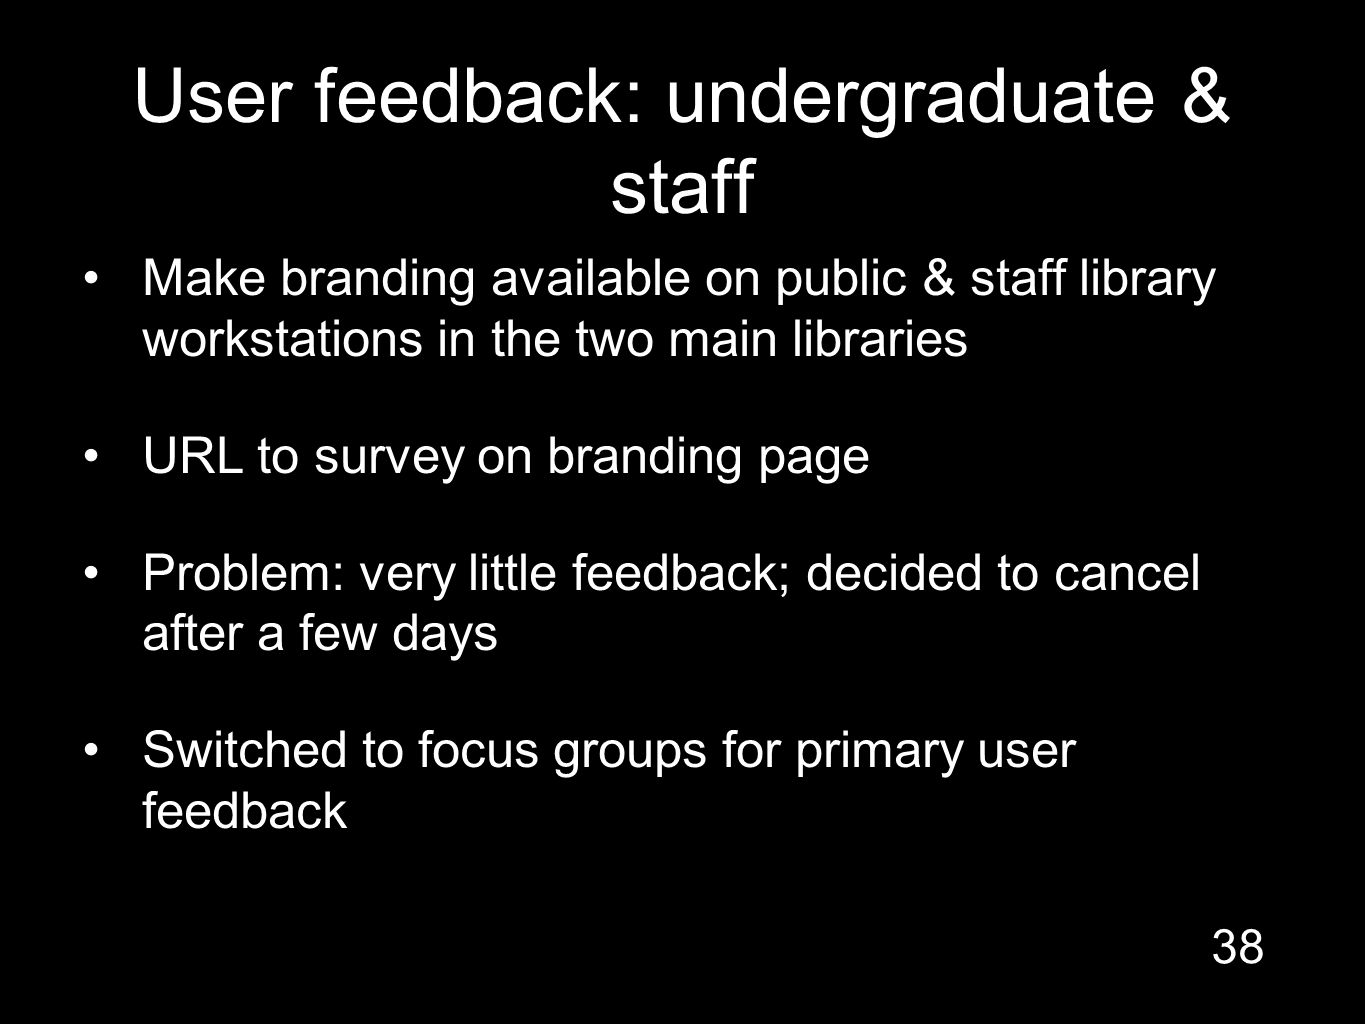 User feedback: undergraduate & staff Make branding available on public & staff library workstations in the two main libraries URL to survey on branding page Problem: very little feedback; decided to cancel after a few days Switched to focus groups for primary user feedback 38